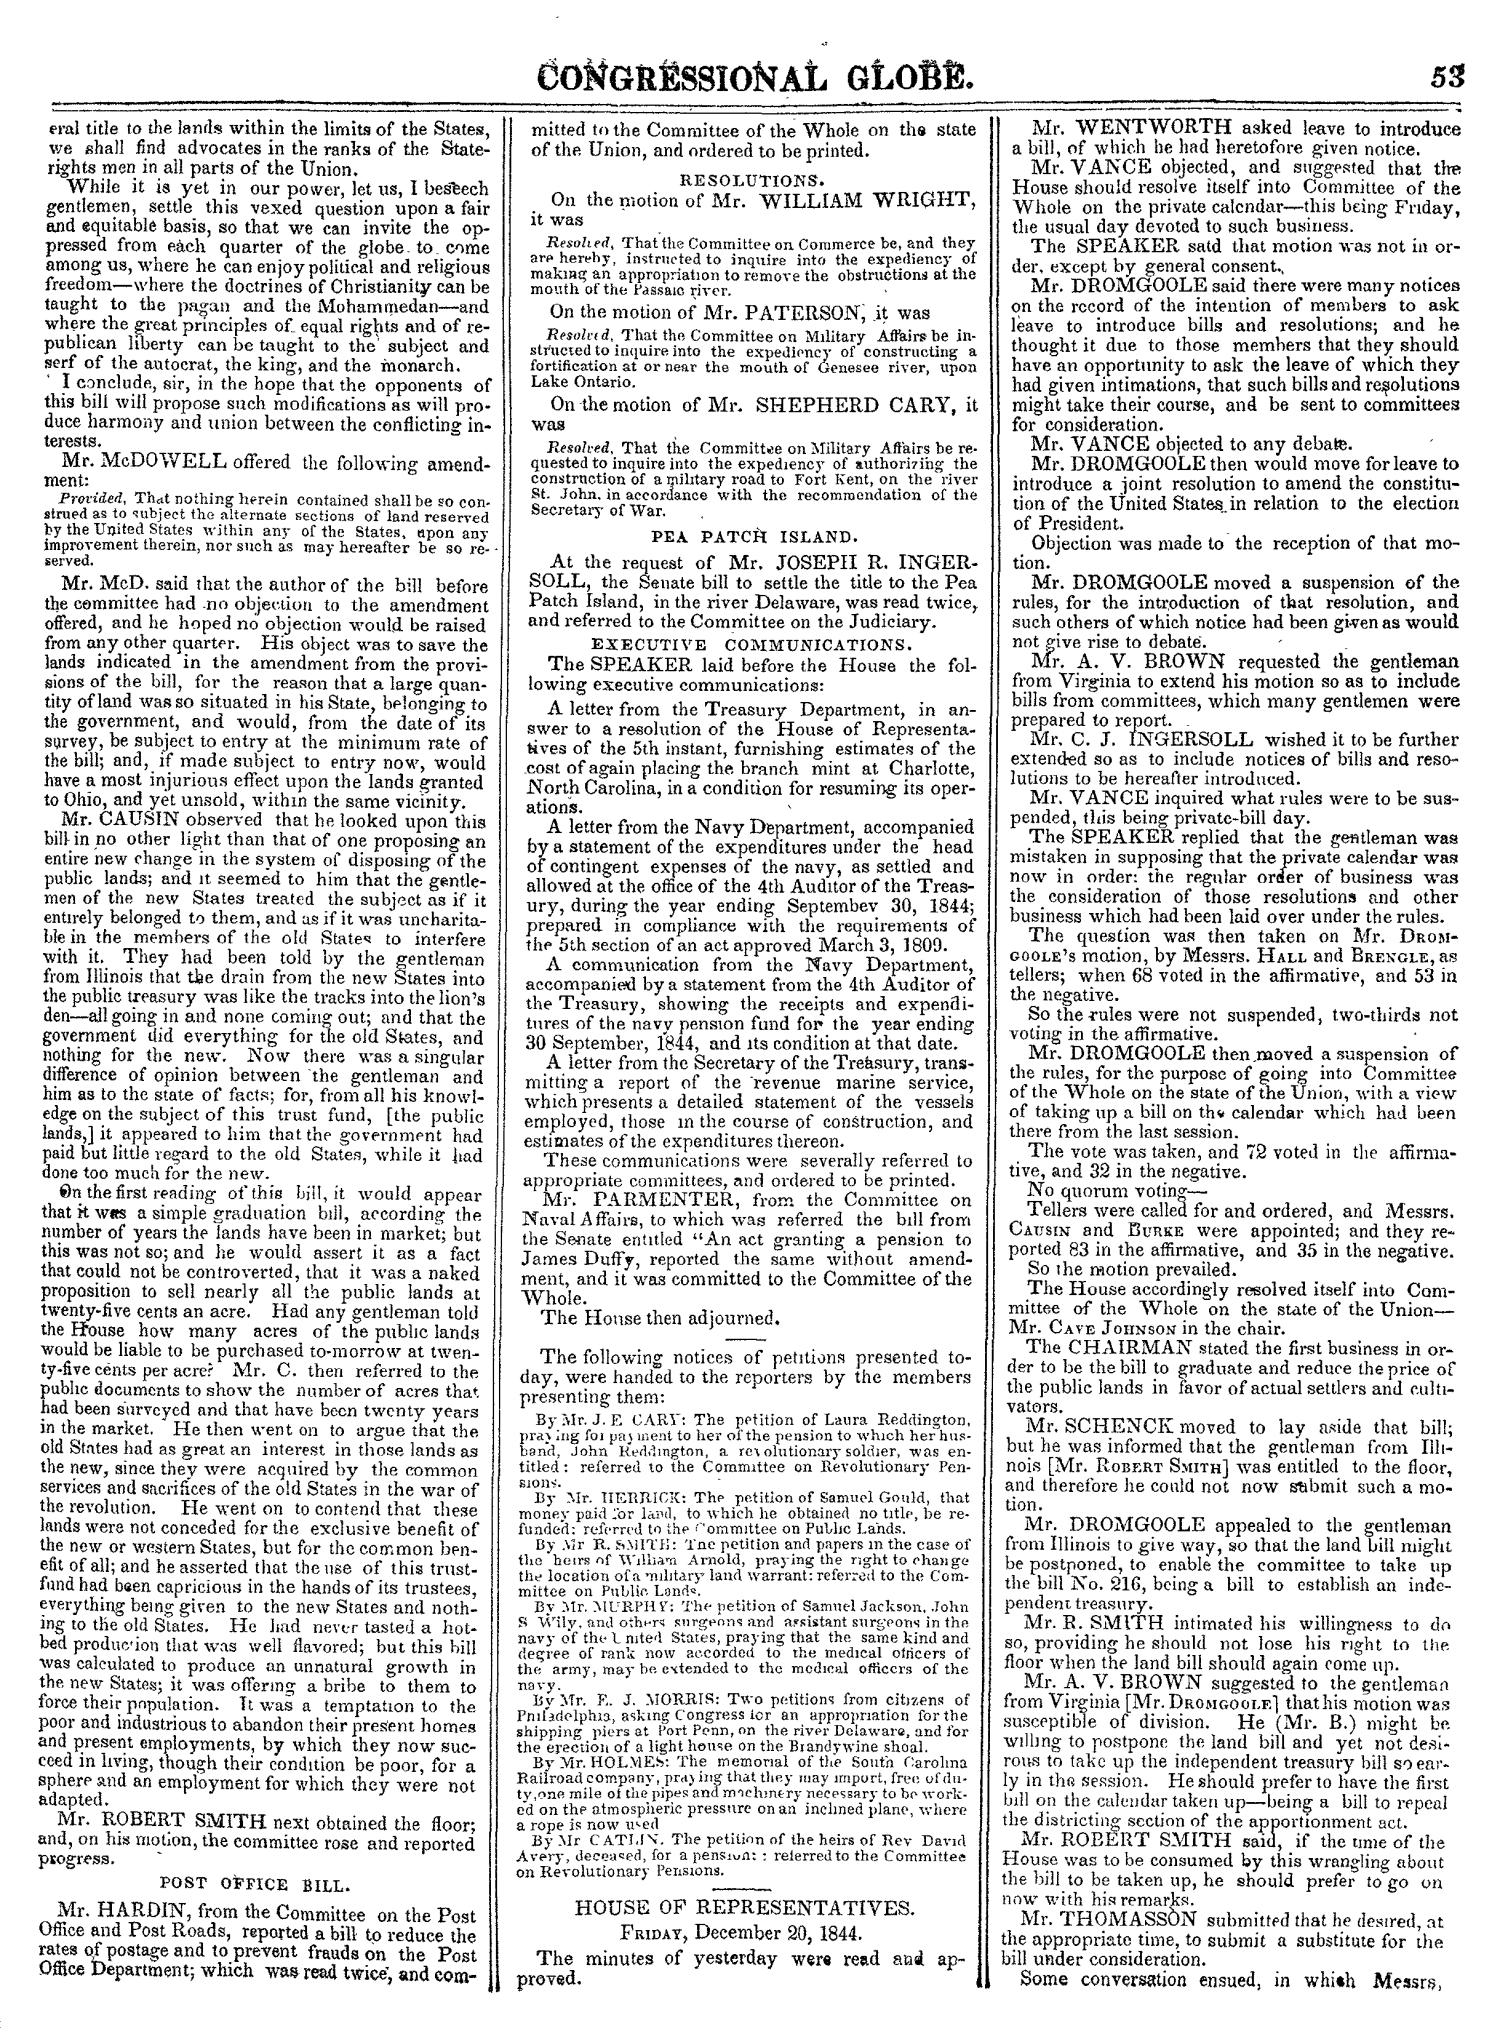 The Congressional Globe, Volume 14: Twenty-Eighth Congress, Second Session                                                                                                      53